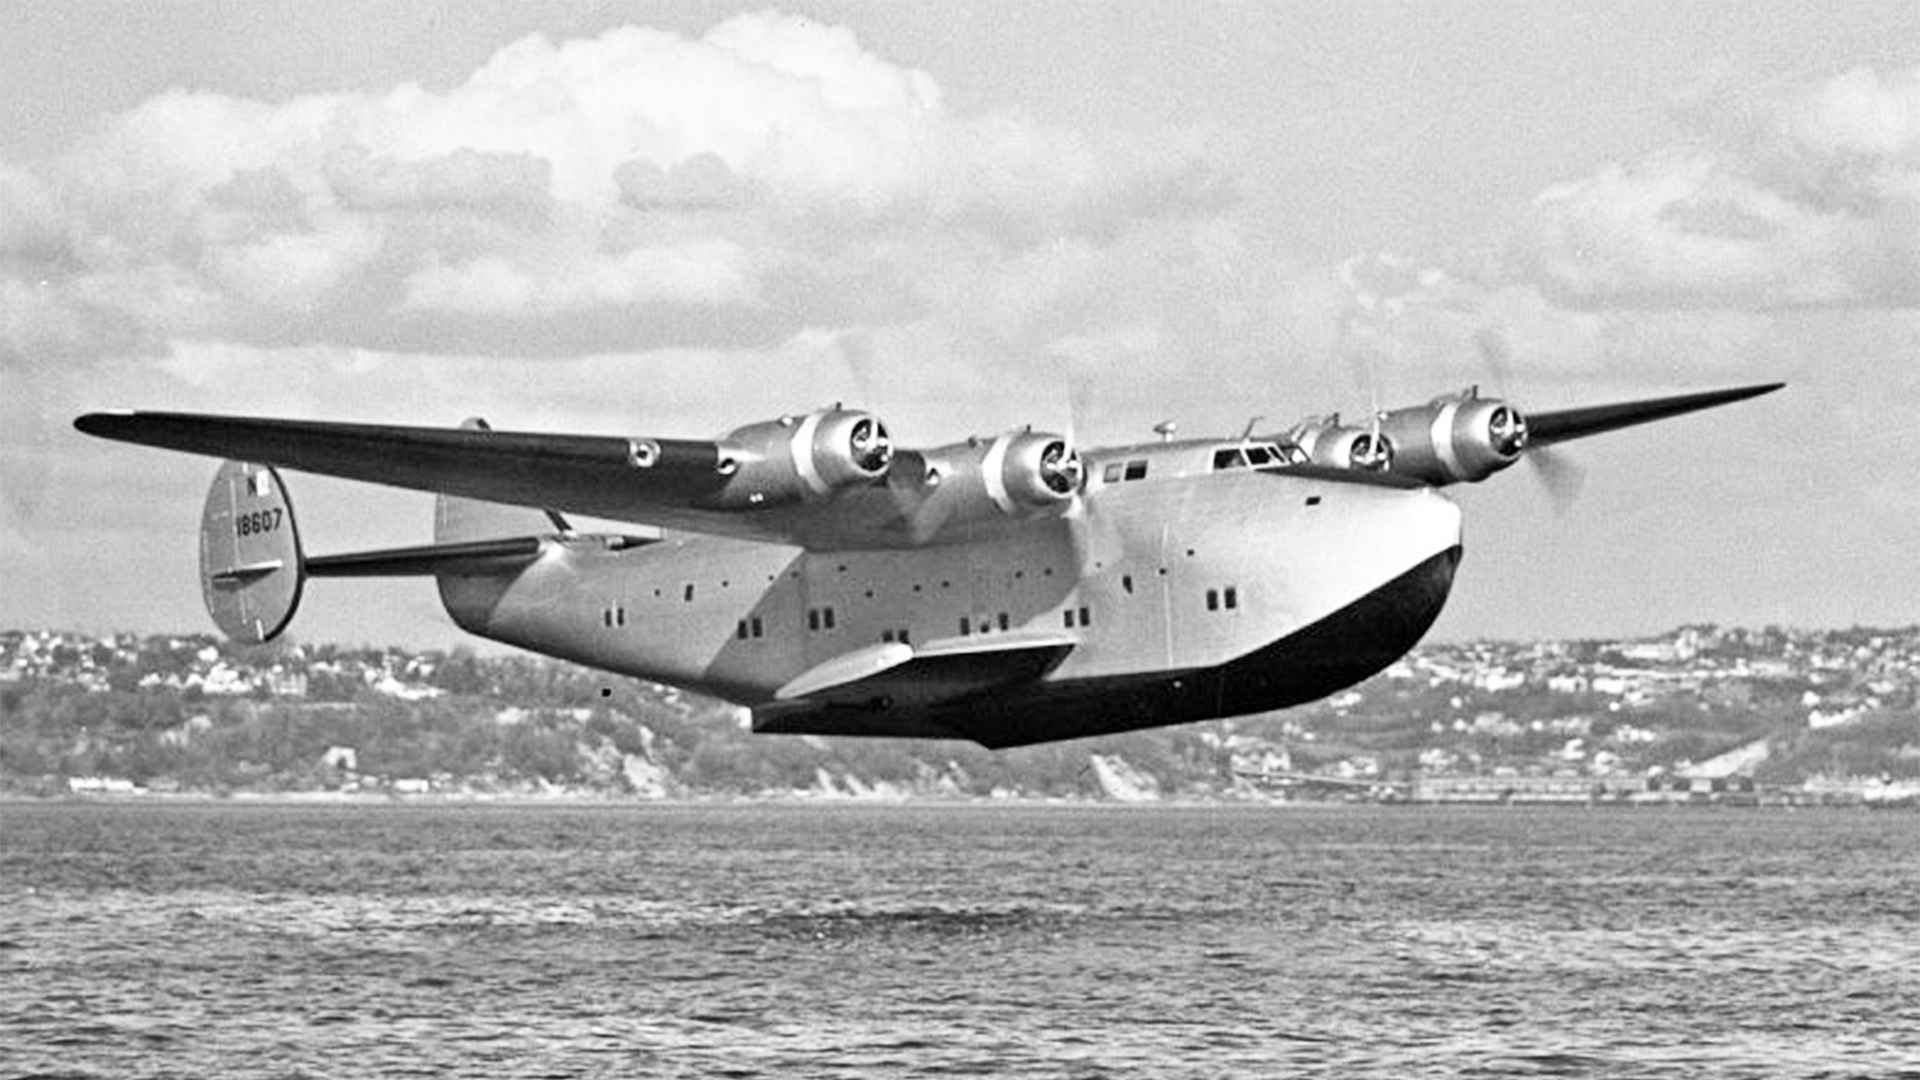 The Long Way Round - The Plane that Accidentally Circumnavigated the World